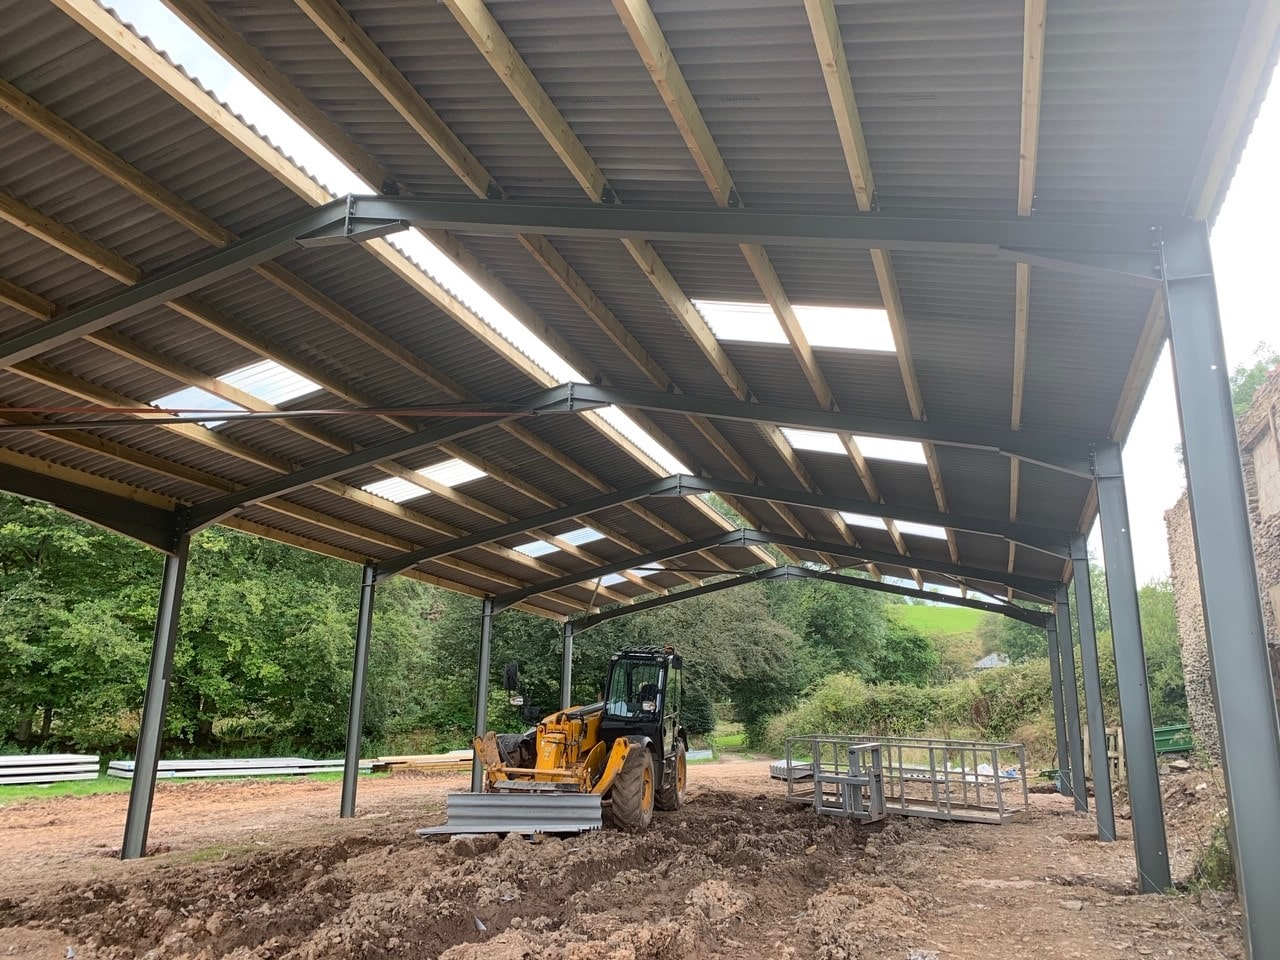 New Tractor Shed